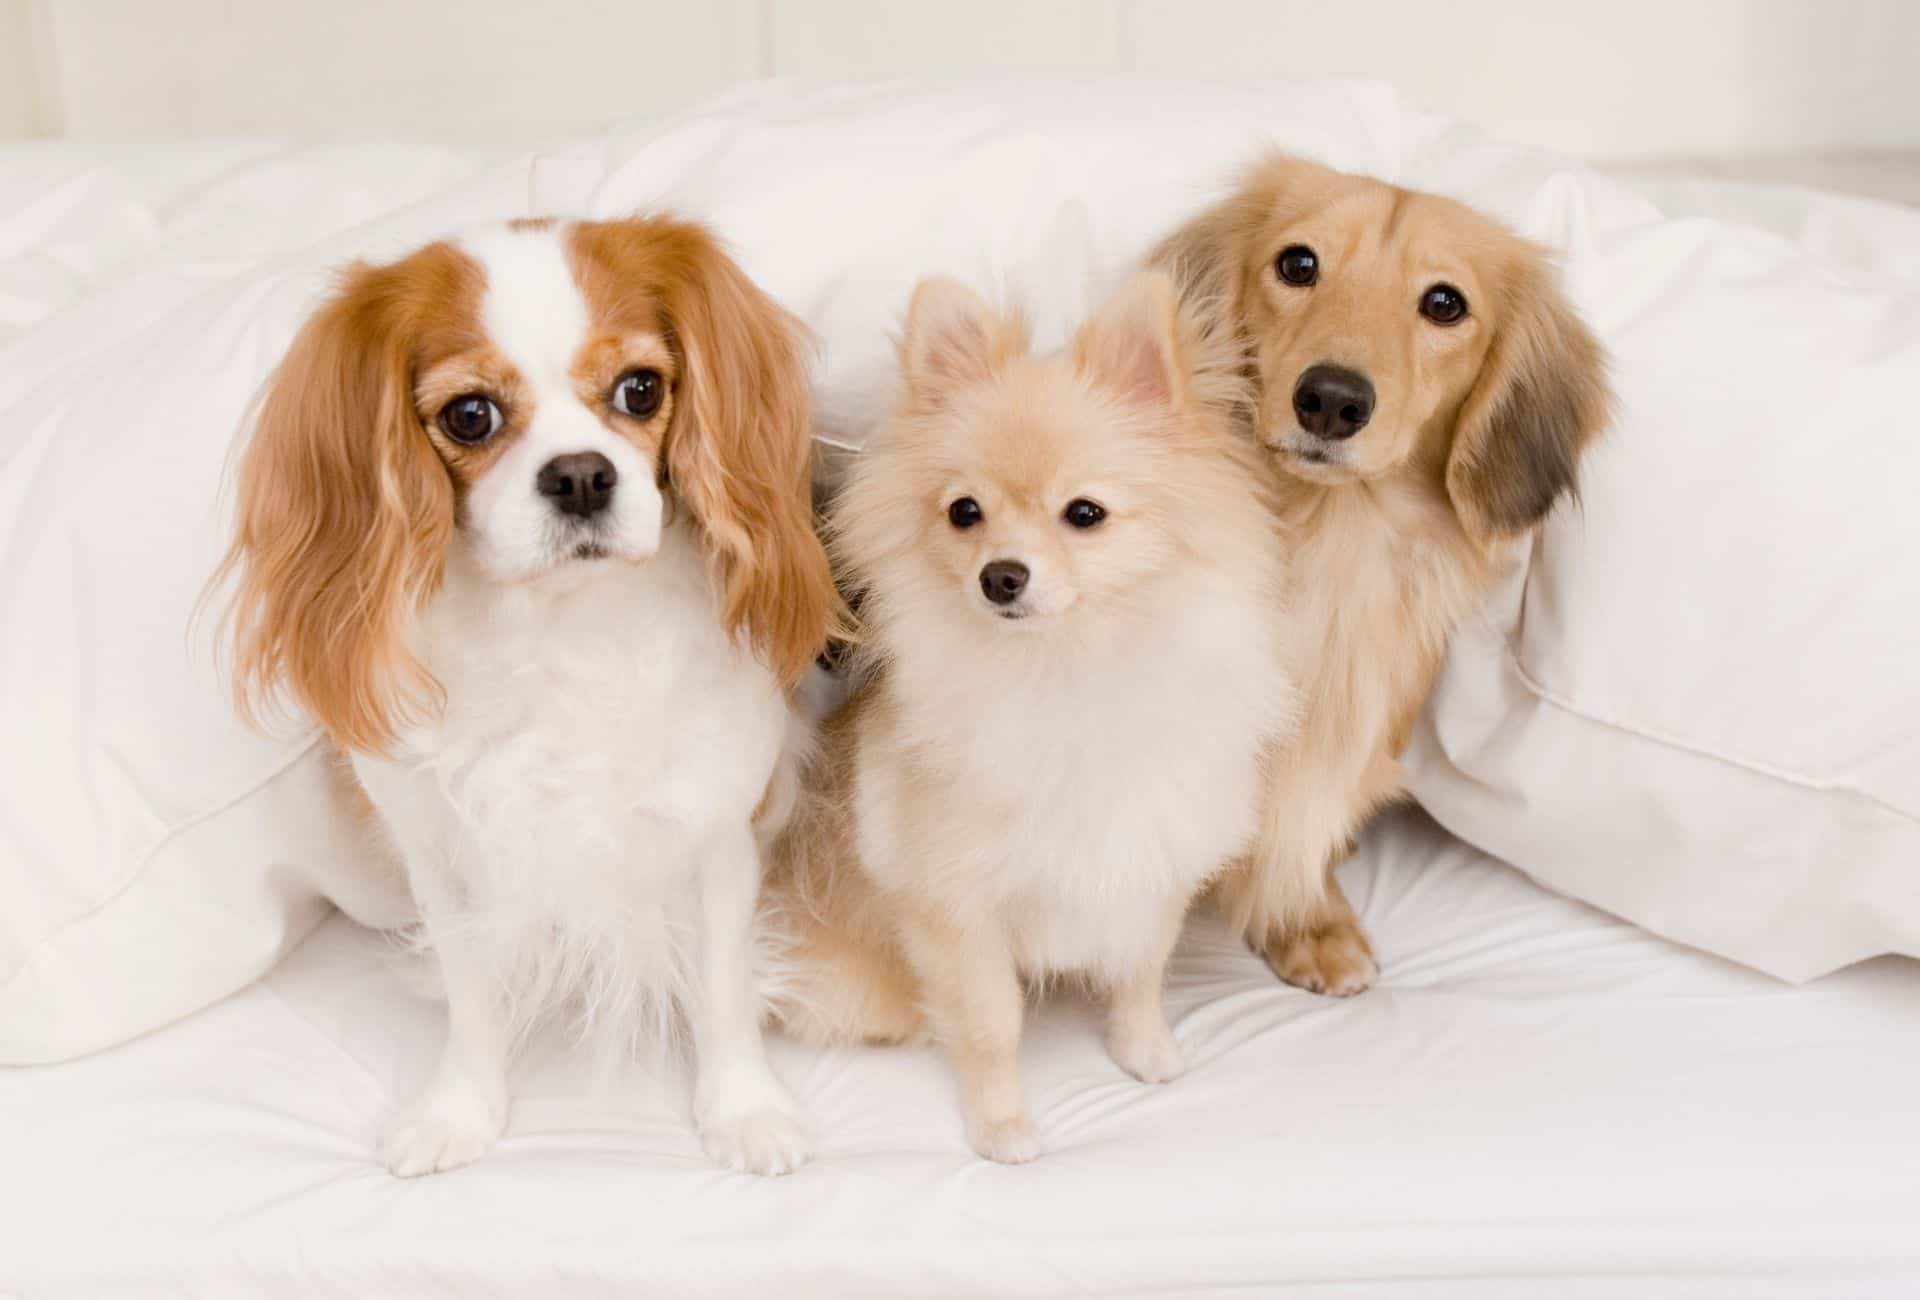 Three small dogs on the bed.